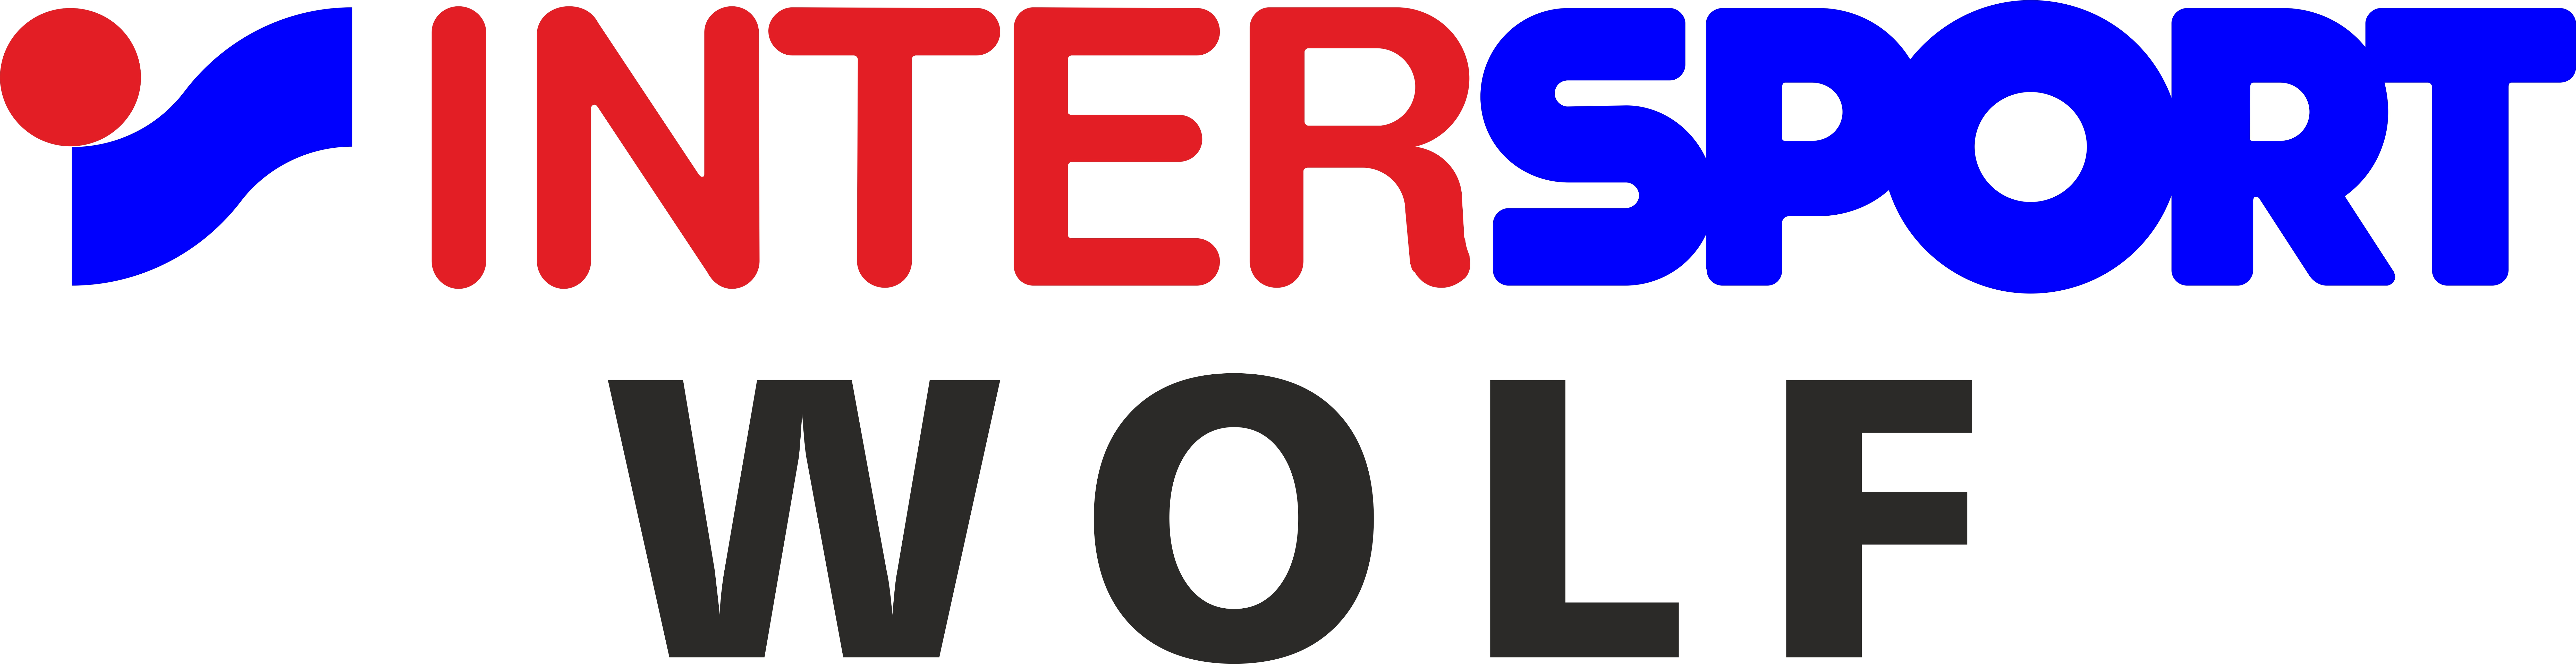 intersport-wolf-logo